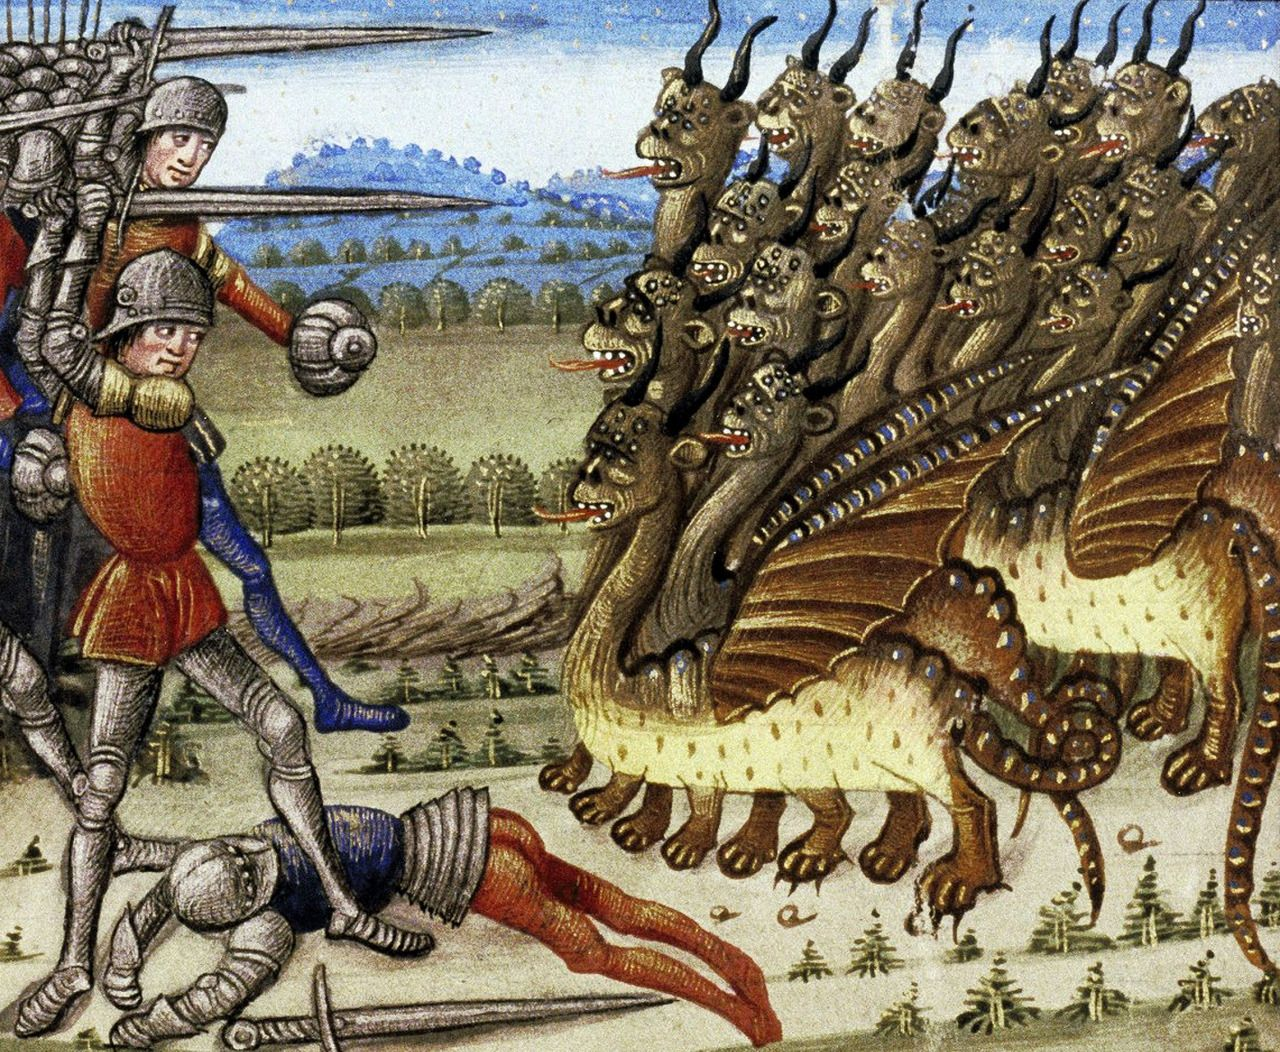 Alexander the great vs many eyed dragons miroir du monde for Miroir du monde